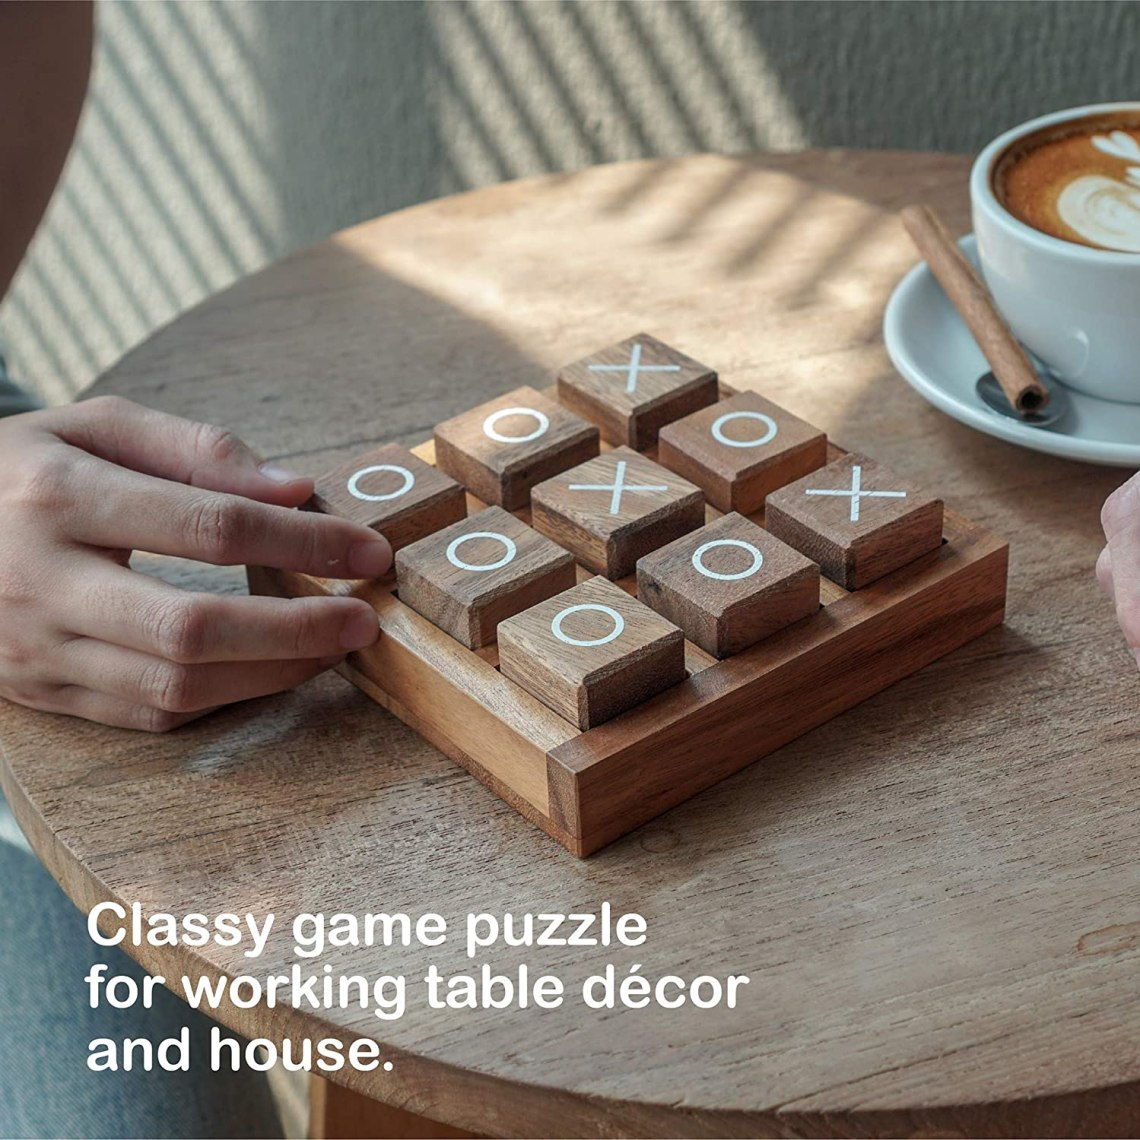 Buy Tic Tac Toe Game For Kids And Family Board Games 3d Travel Of Living Room Decor And Coffee Top Table Games Decor Family Games Night Classic Board Tictactoe Online In Indonesia